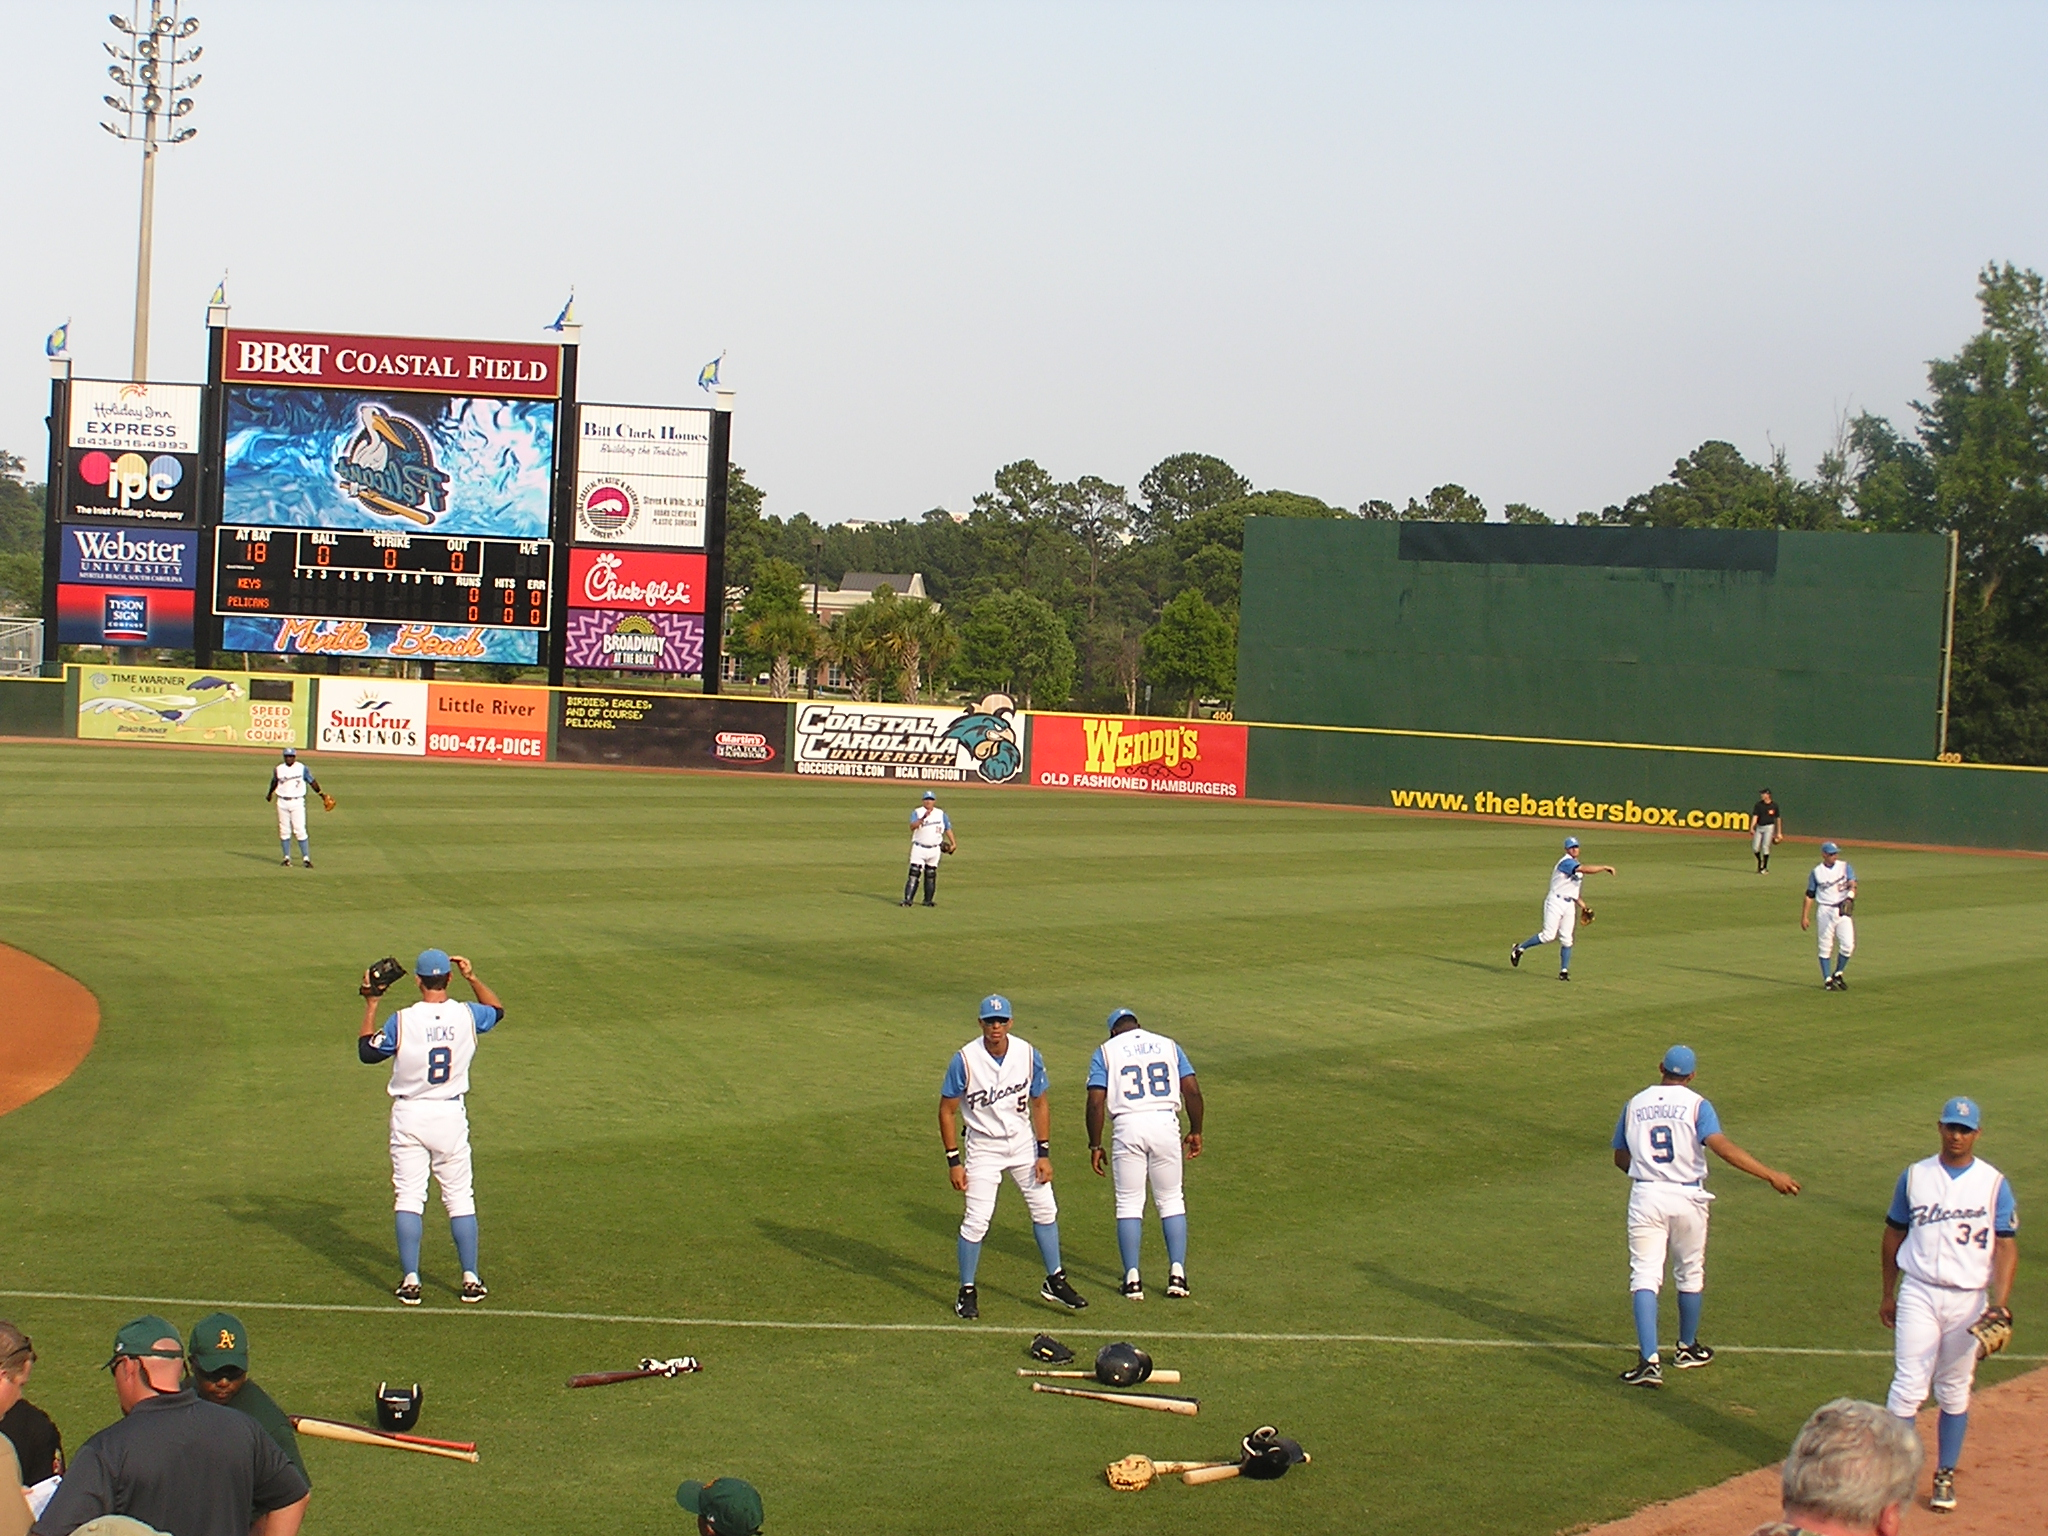 Pre-Game stretching - BB&T Coastal, Myrtle Beach